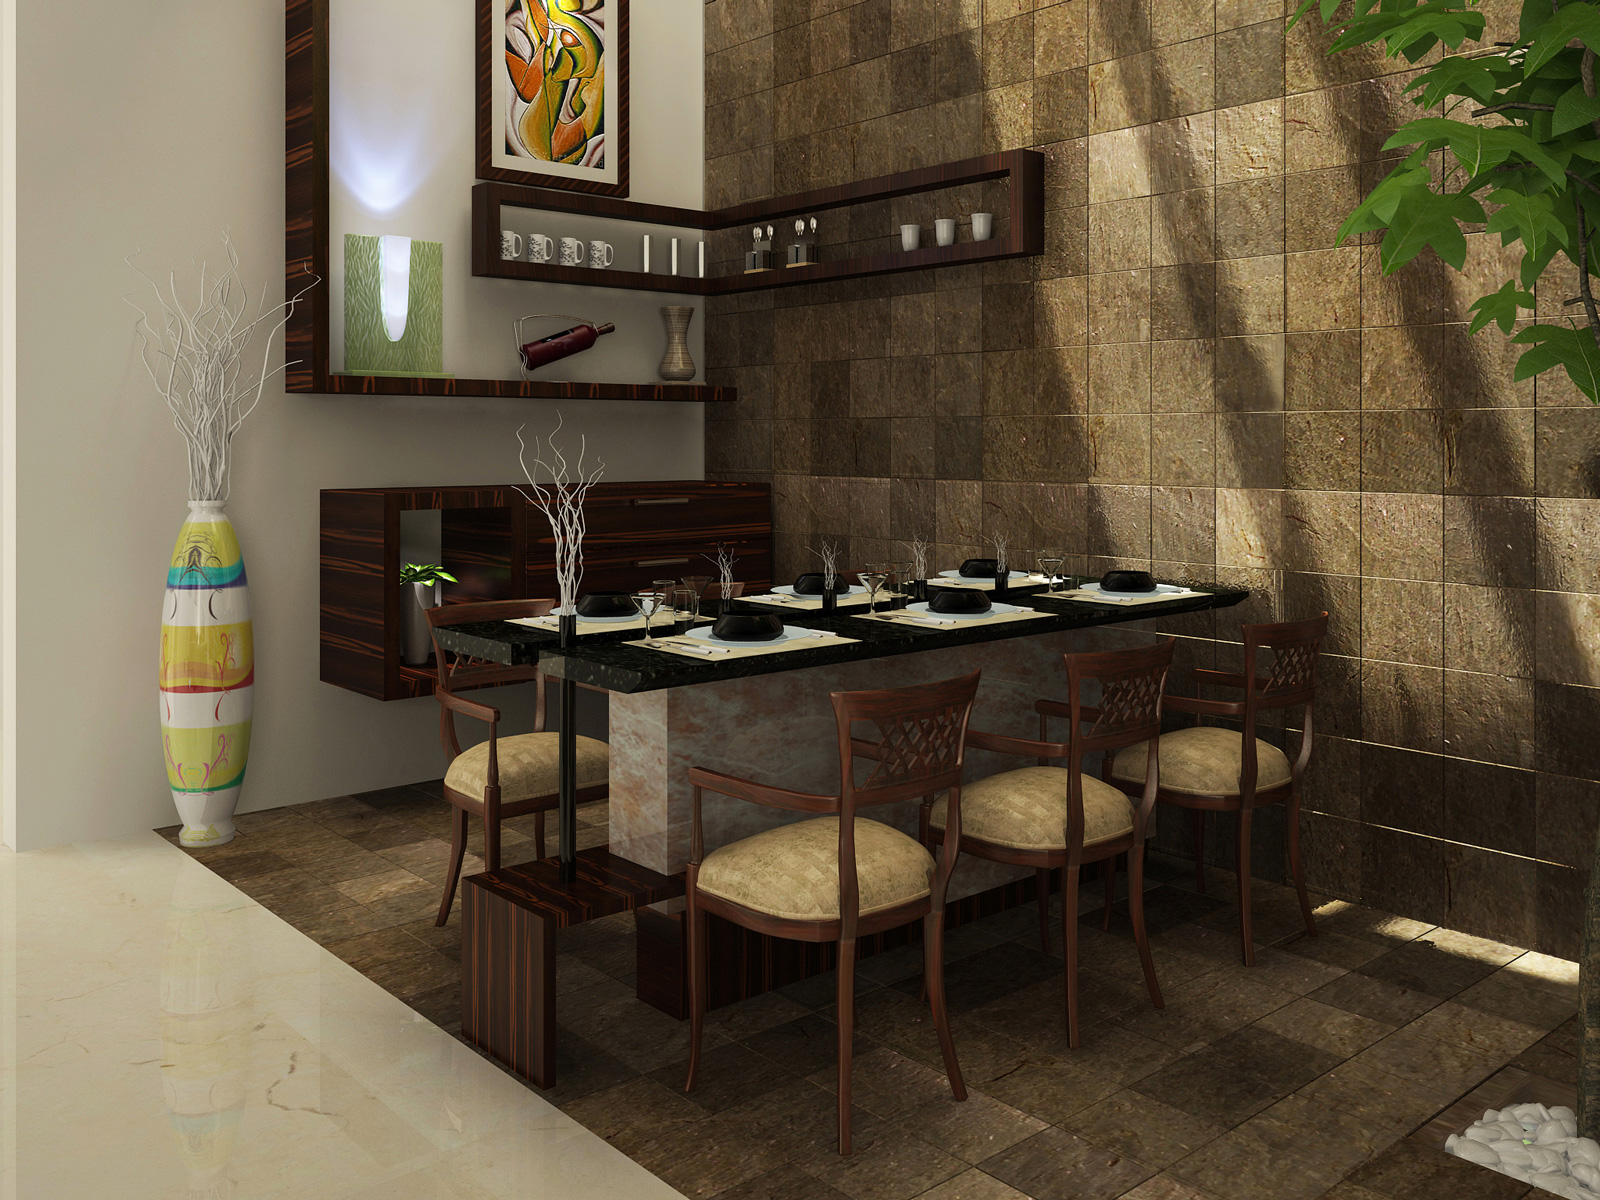 Living Room Interior Design In Kerala interior design for dining room of new home kerala home interior